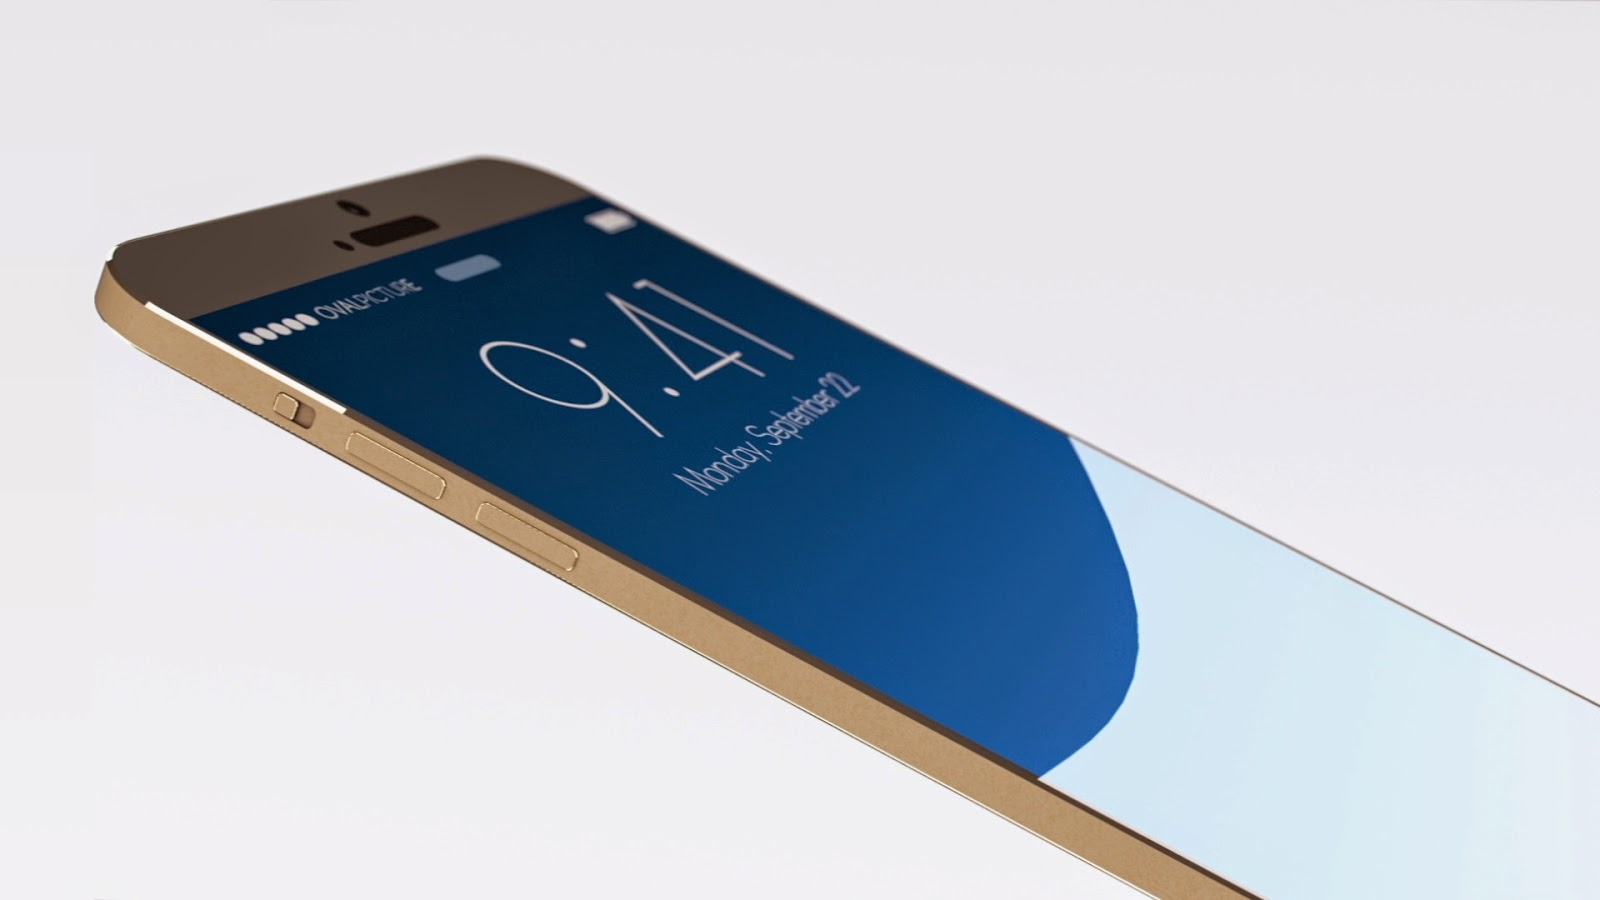 Iphone 8 Release Date This iPhone might arrive in